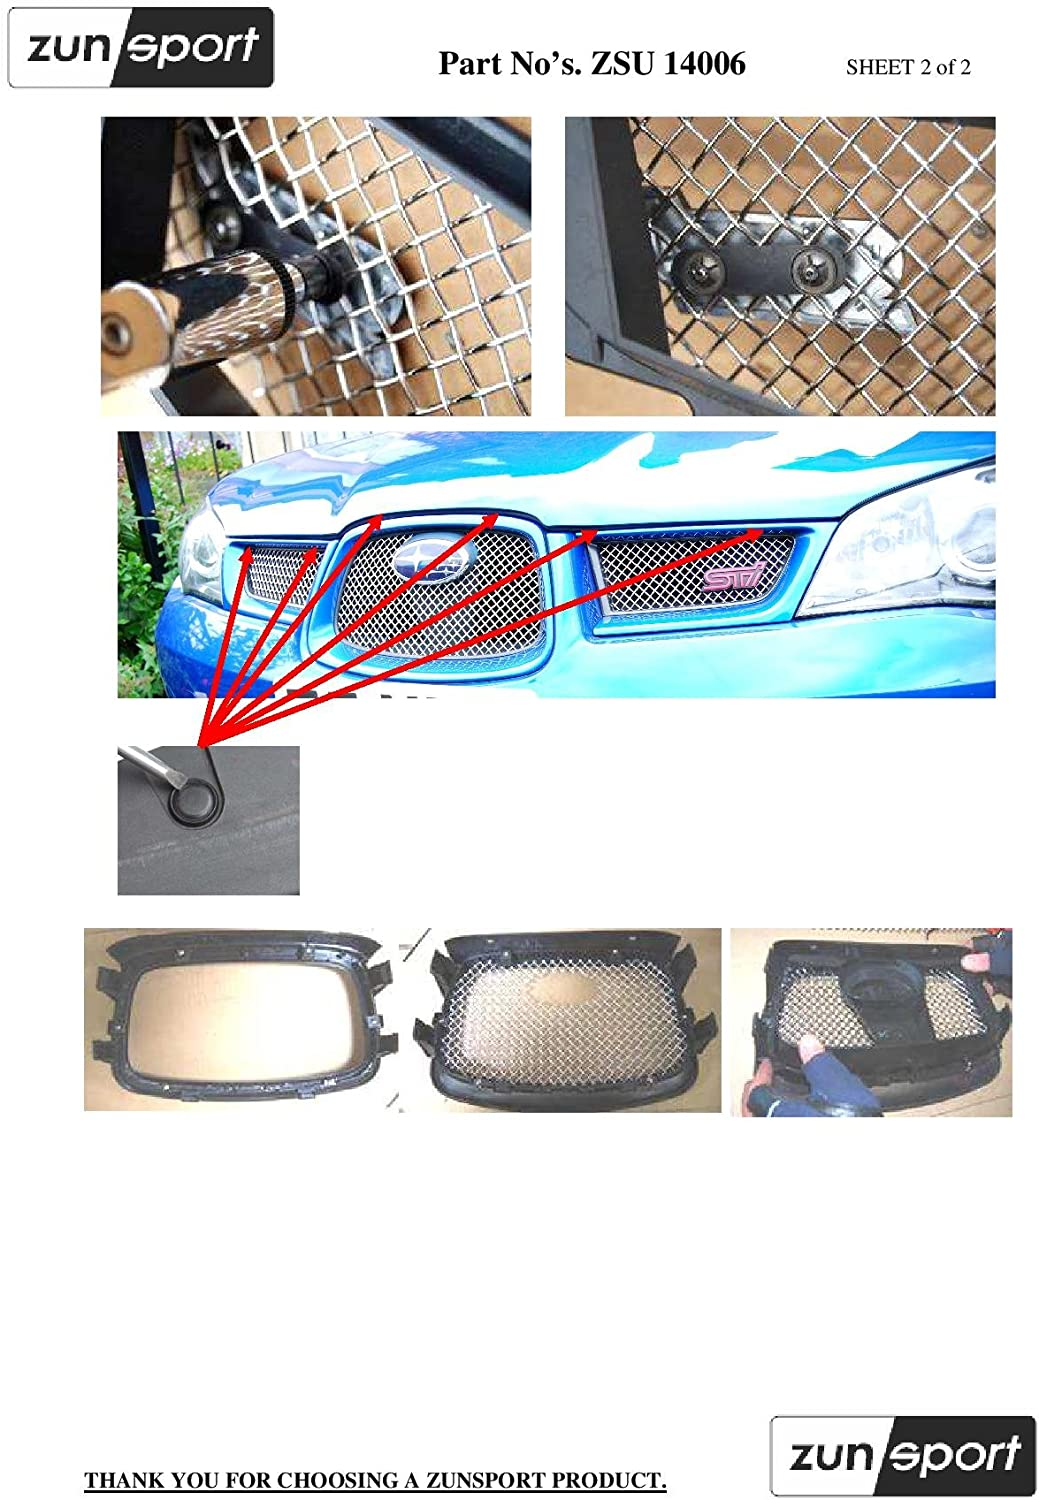 Black finish Top Grille Set 2006 to 2007 Zunsport Compatible With Subaru Impreza Hawkeye